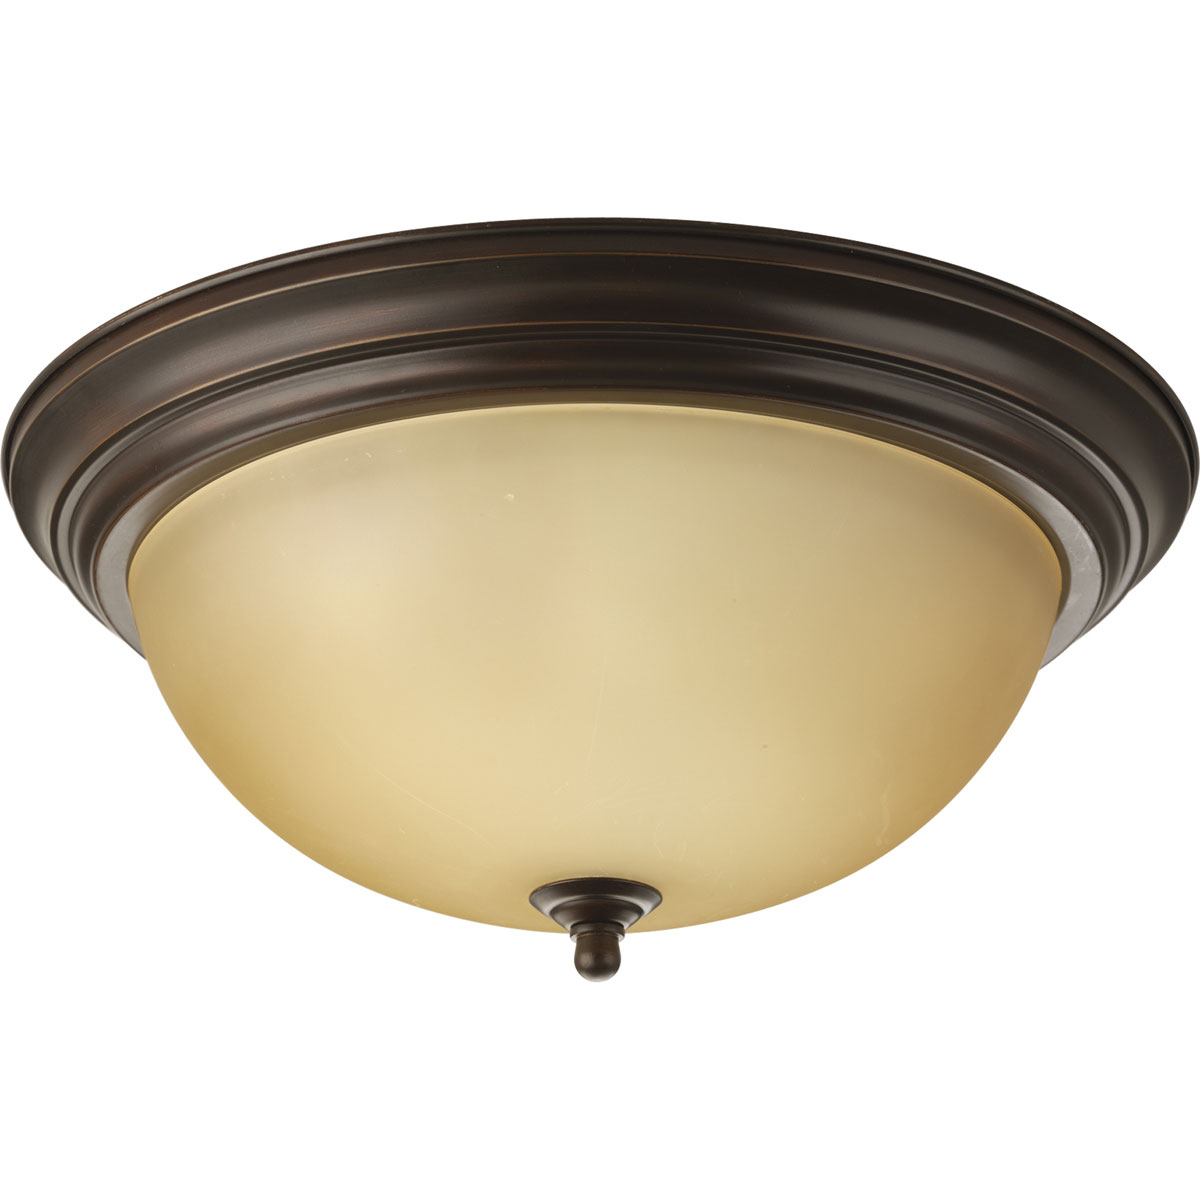 Progress Lighting (P3926-20T) 3 Light Dome Shaped Flush Mount in Antique Bronze